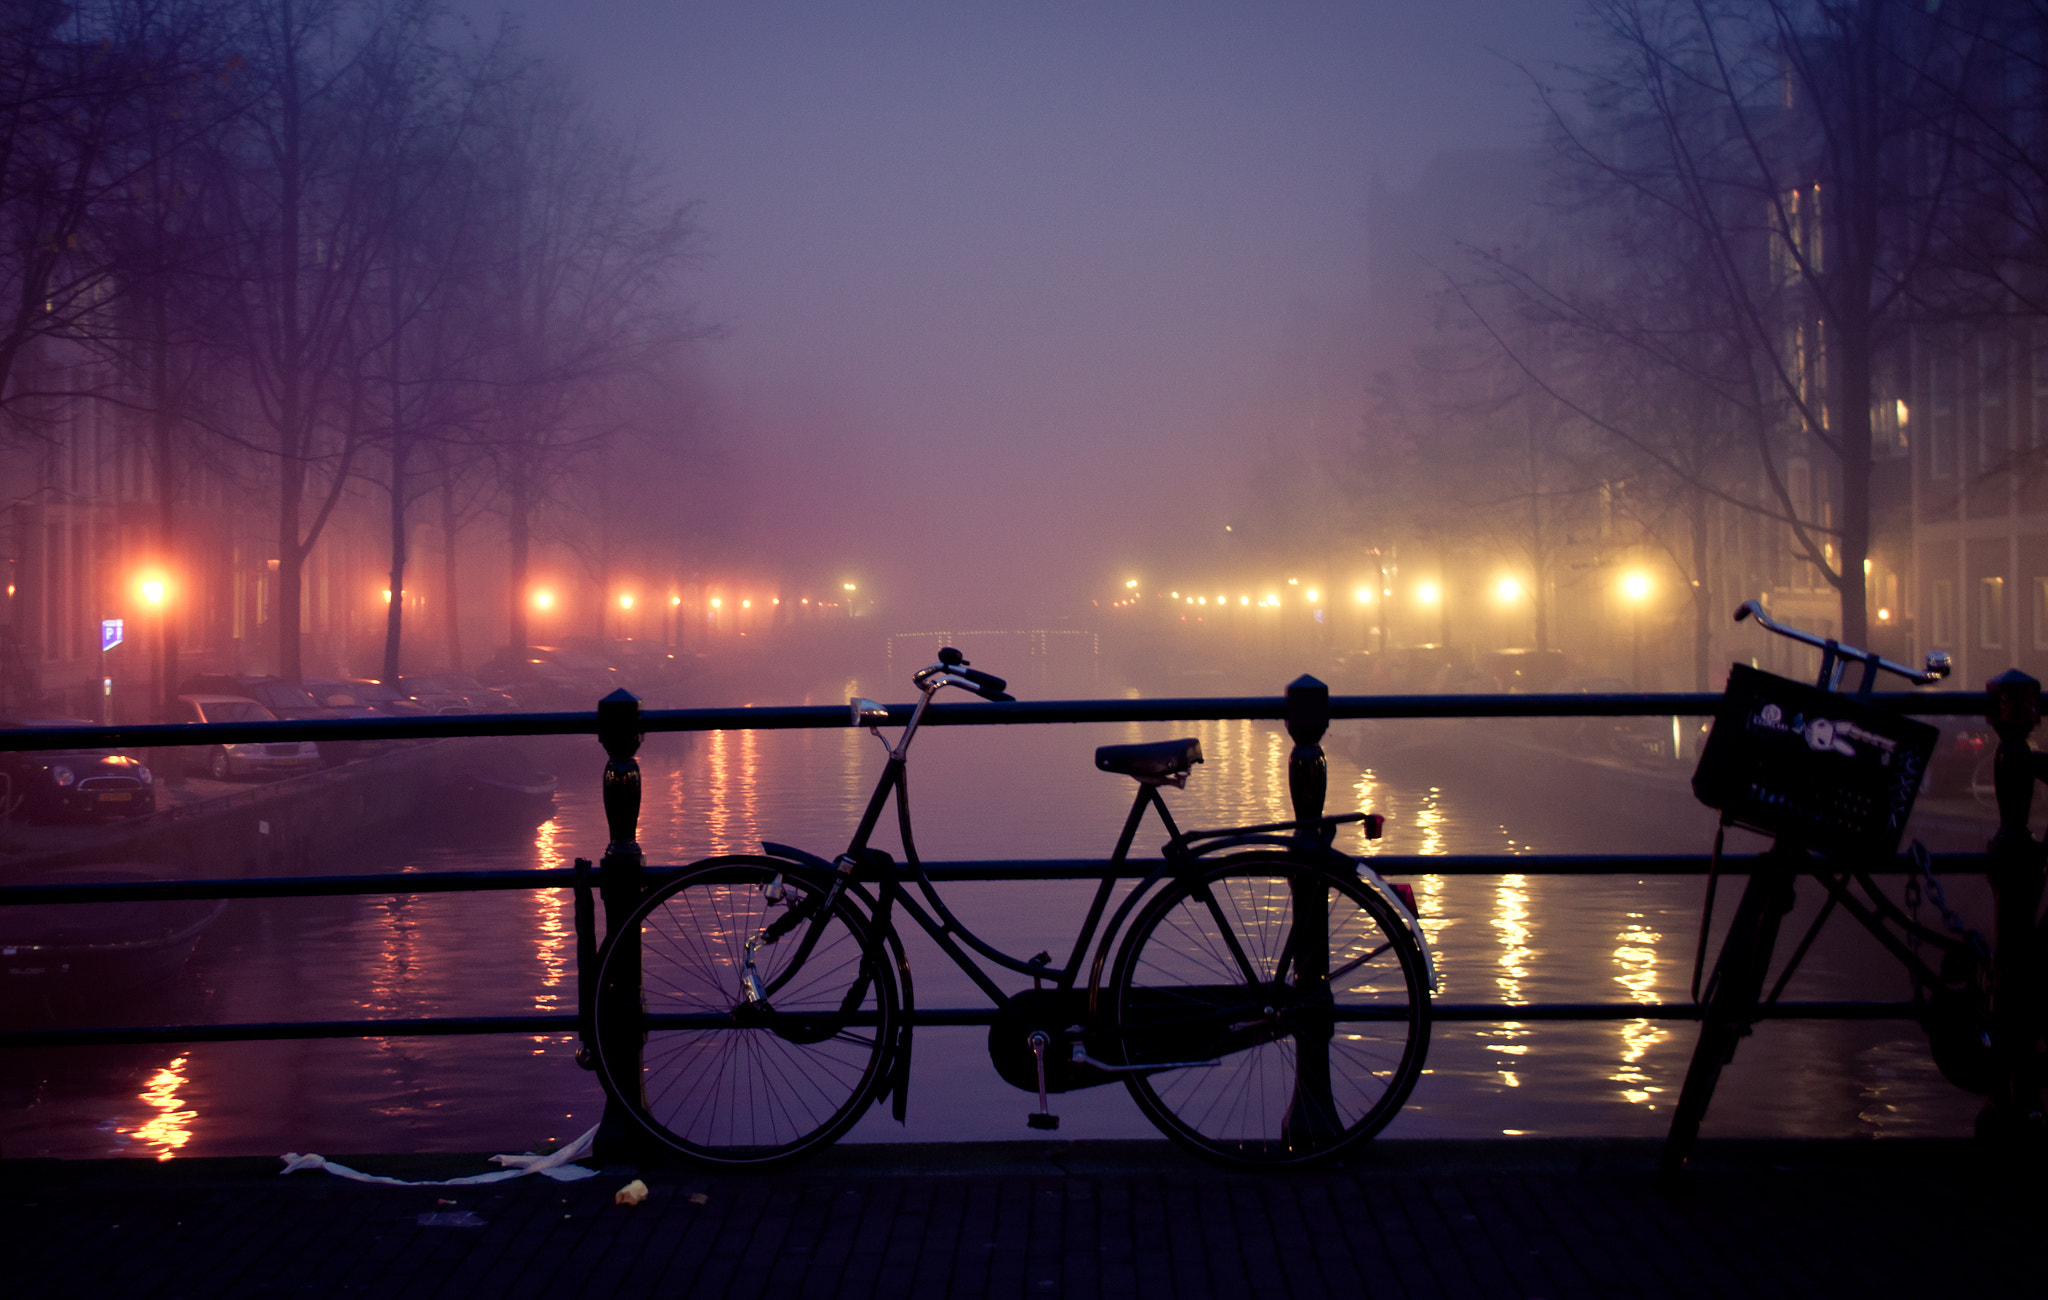 Photograph Foggy evening  in Amsterdam2 by Glafira Kushnir on 500px